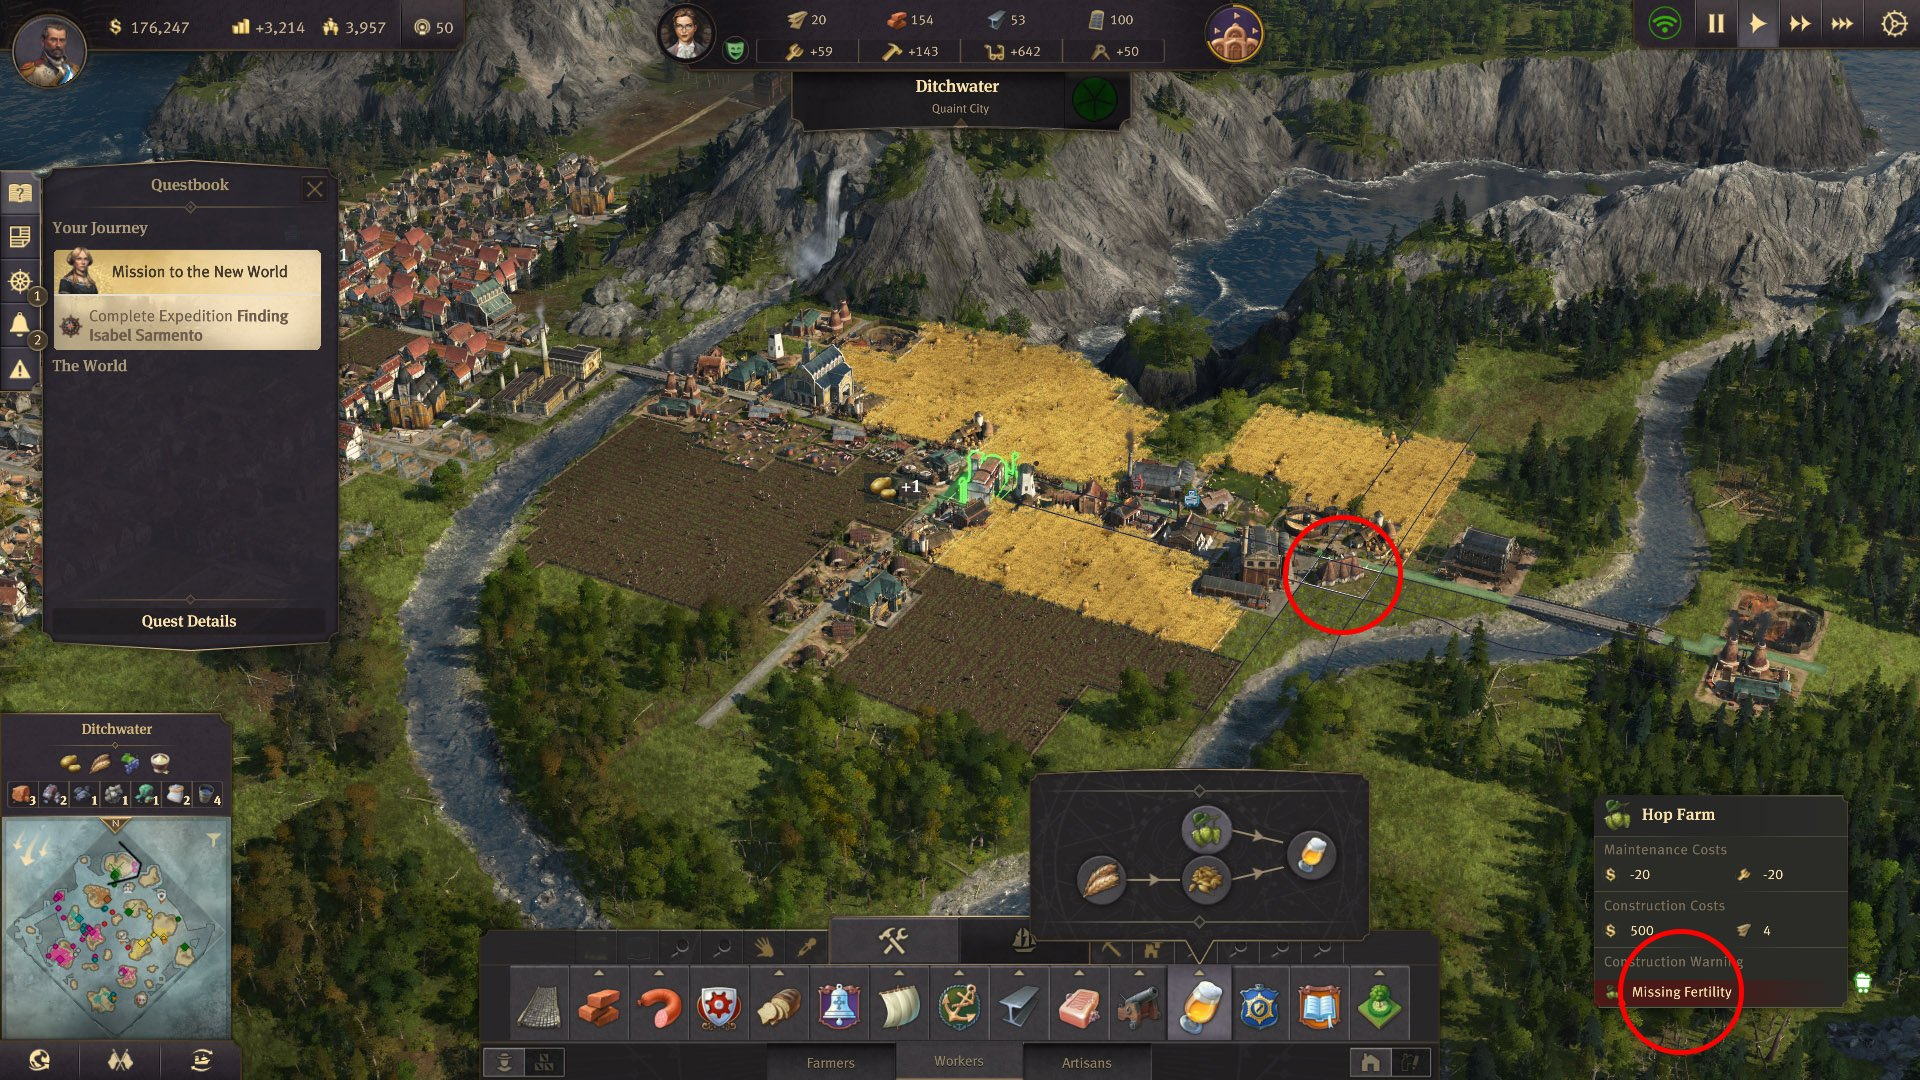 """What does """"missing fertility"""" mean in Anno 1800? 